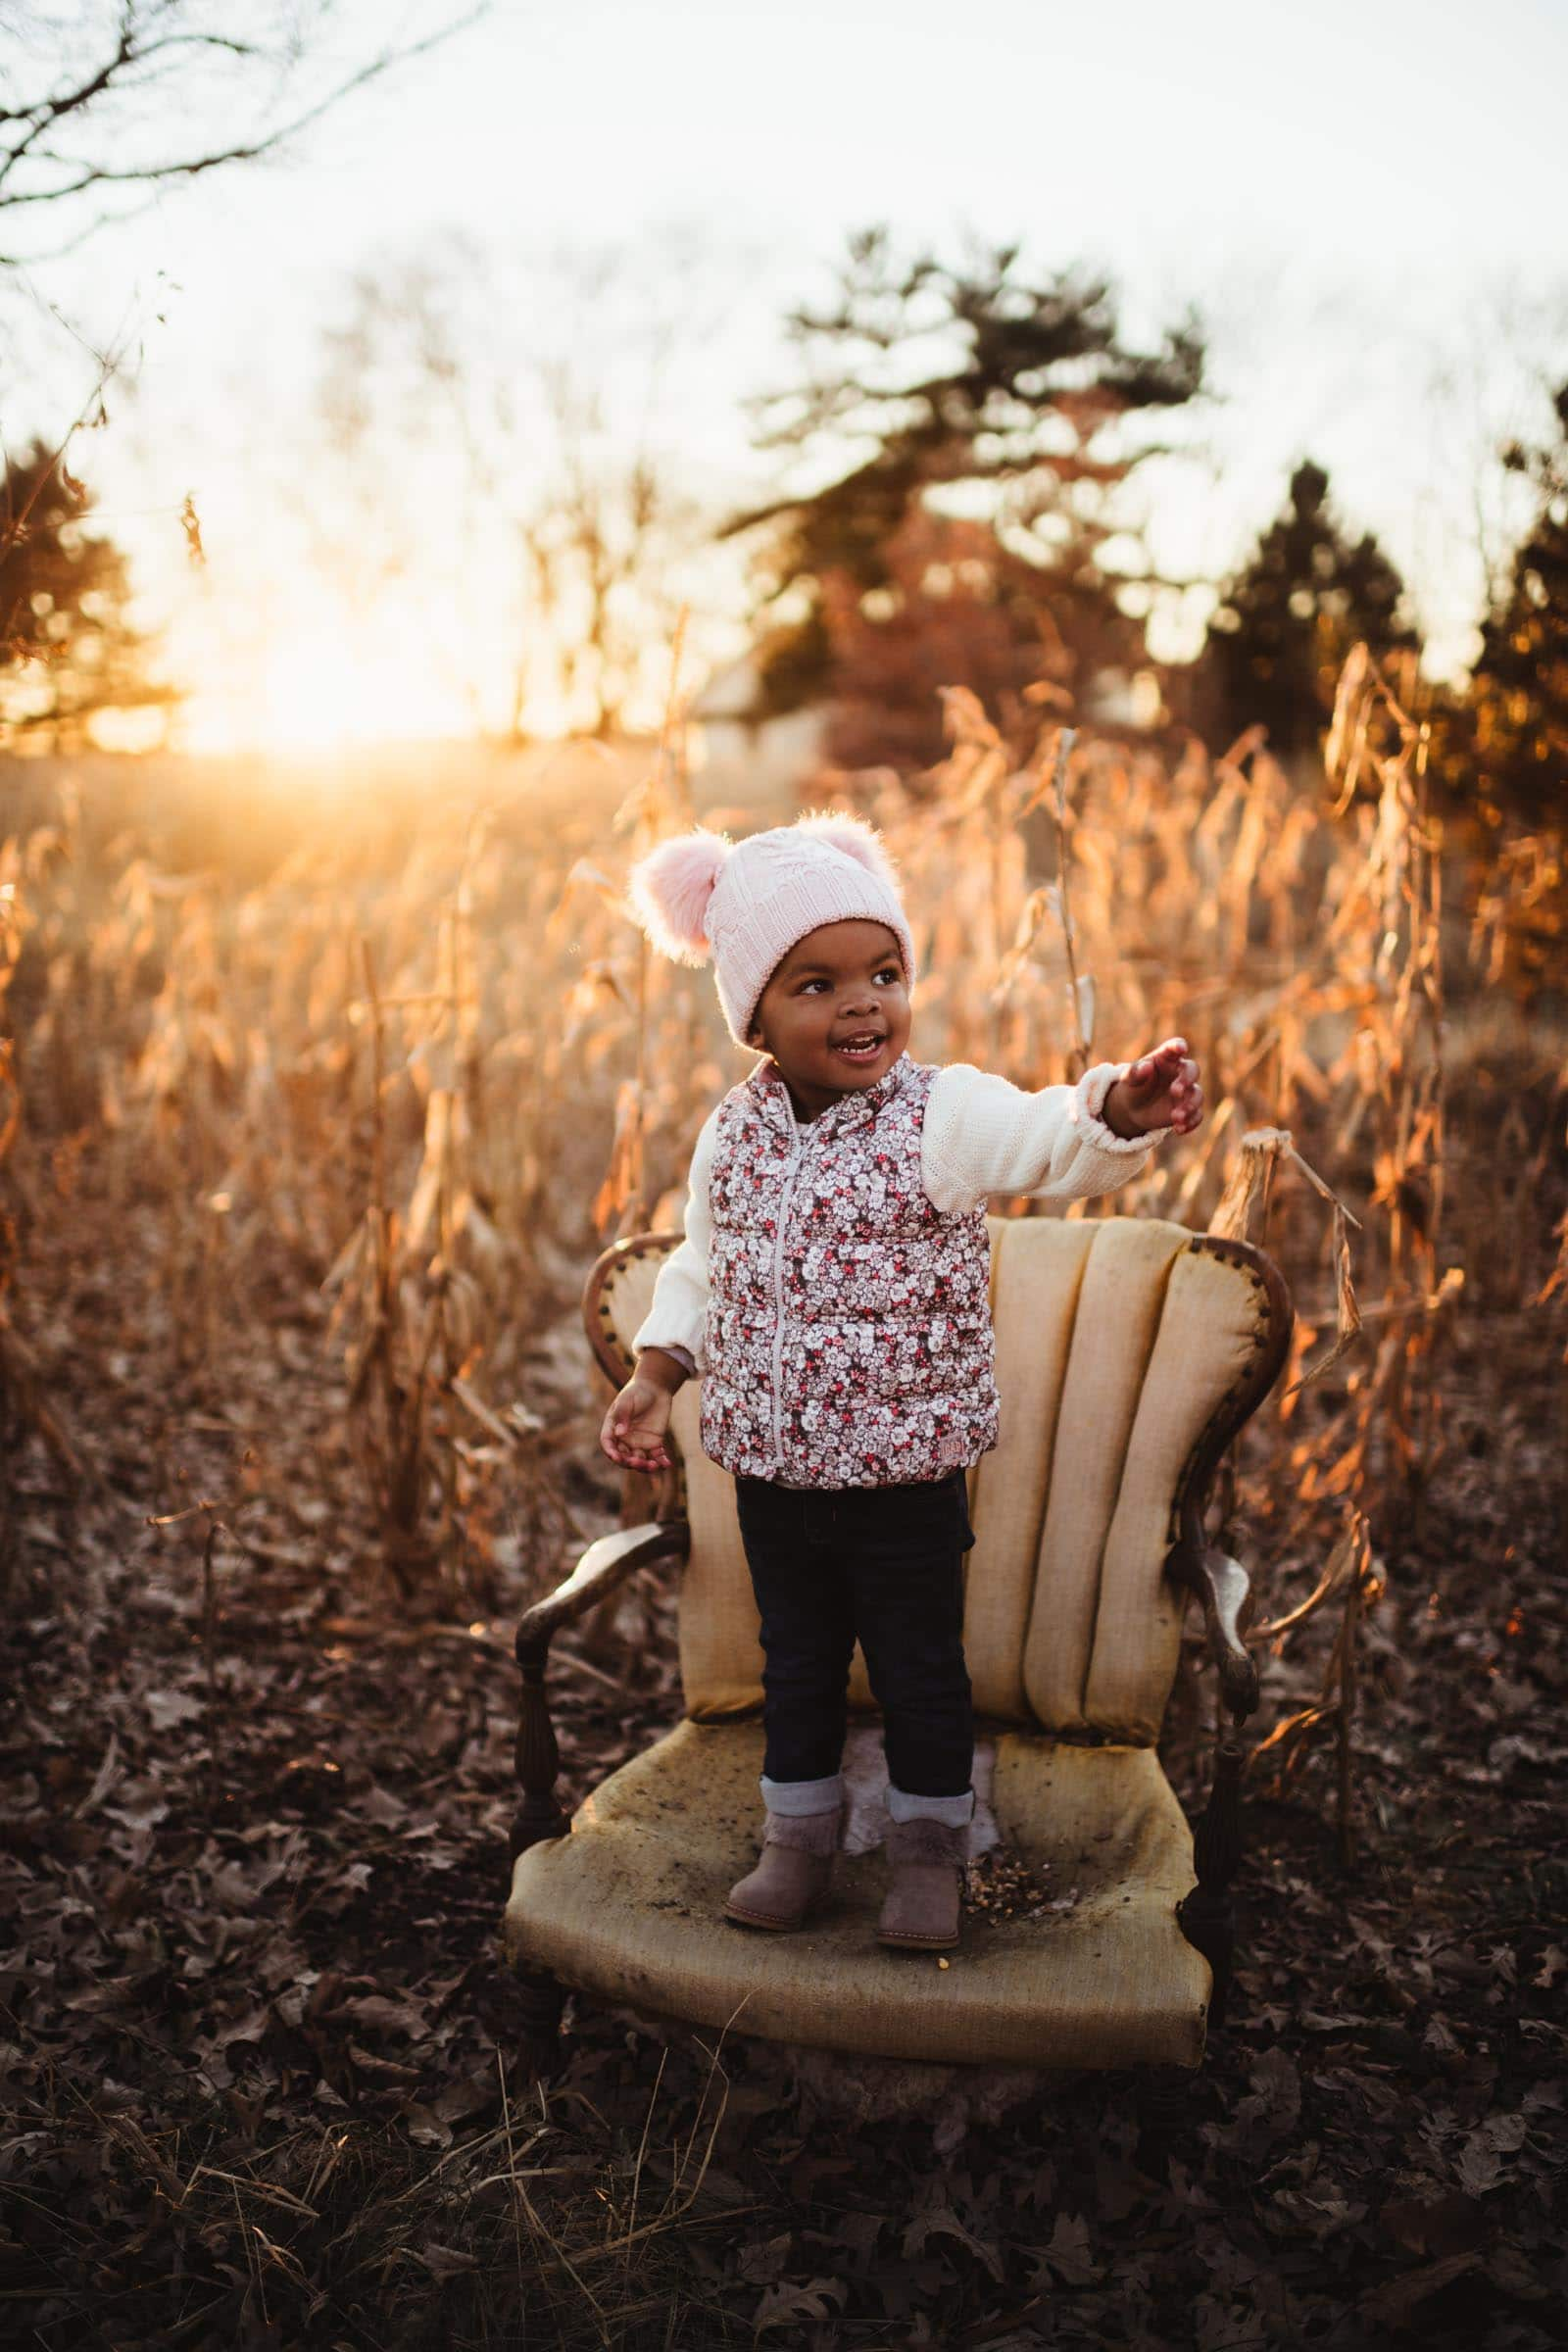 Little Girl on Chair in Cornfield at Sunset